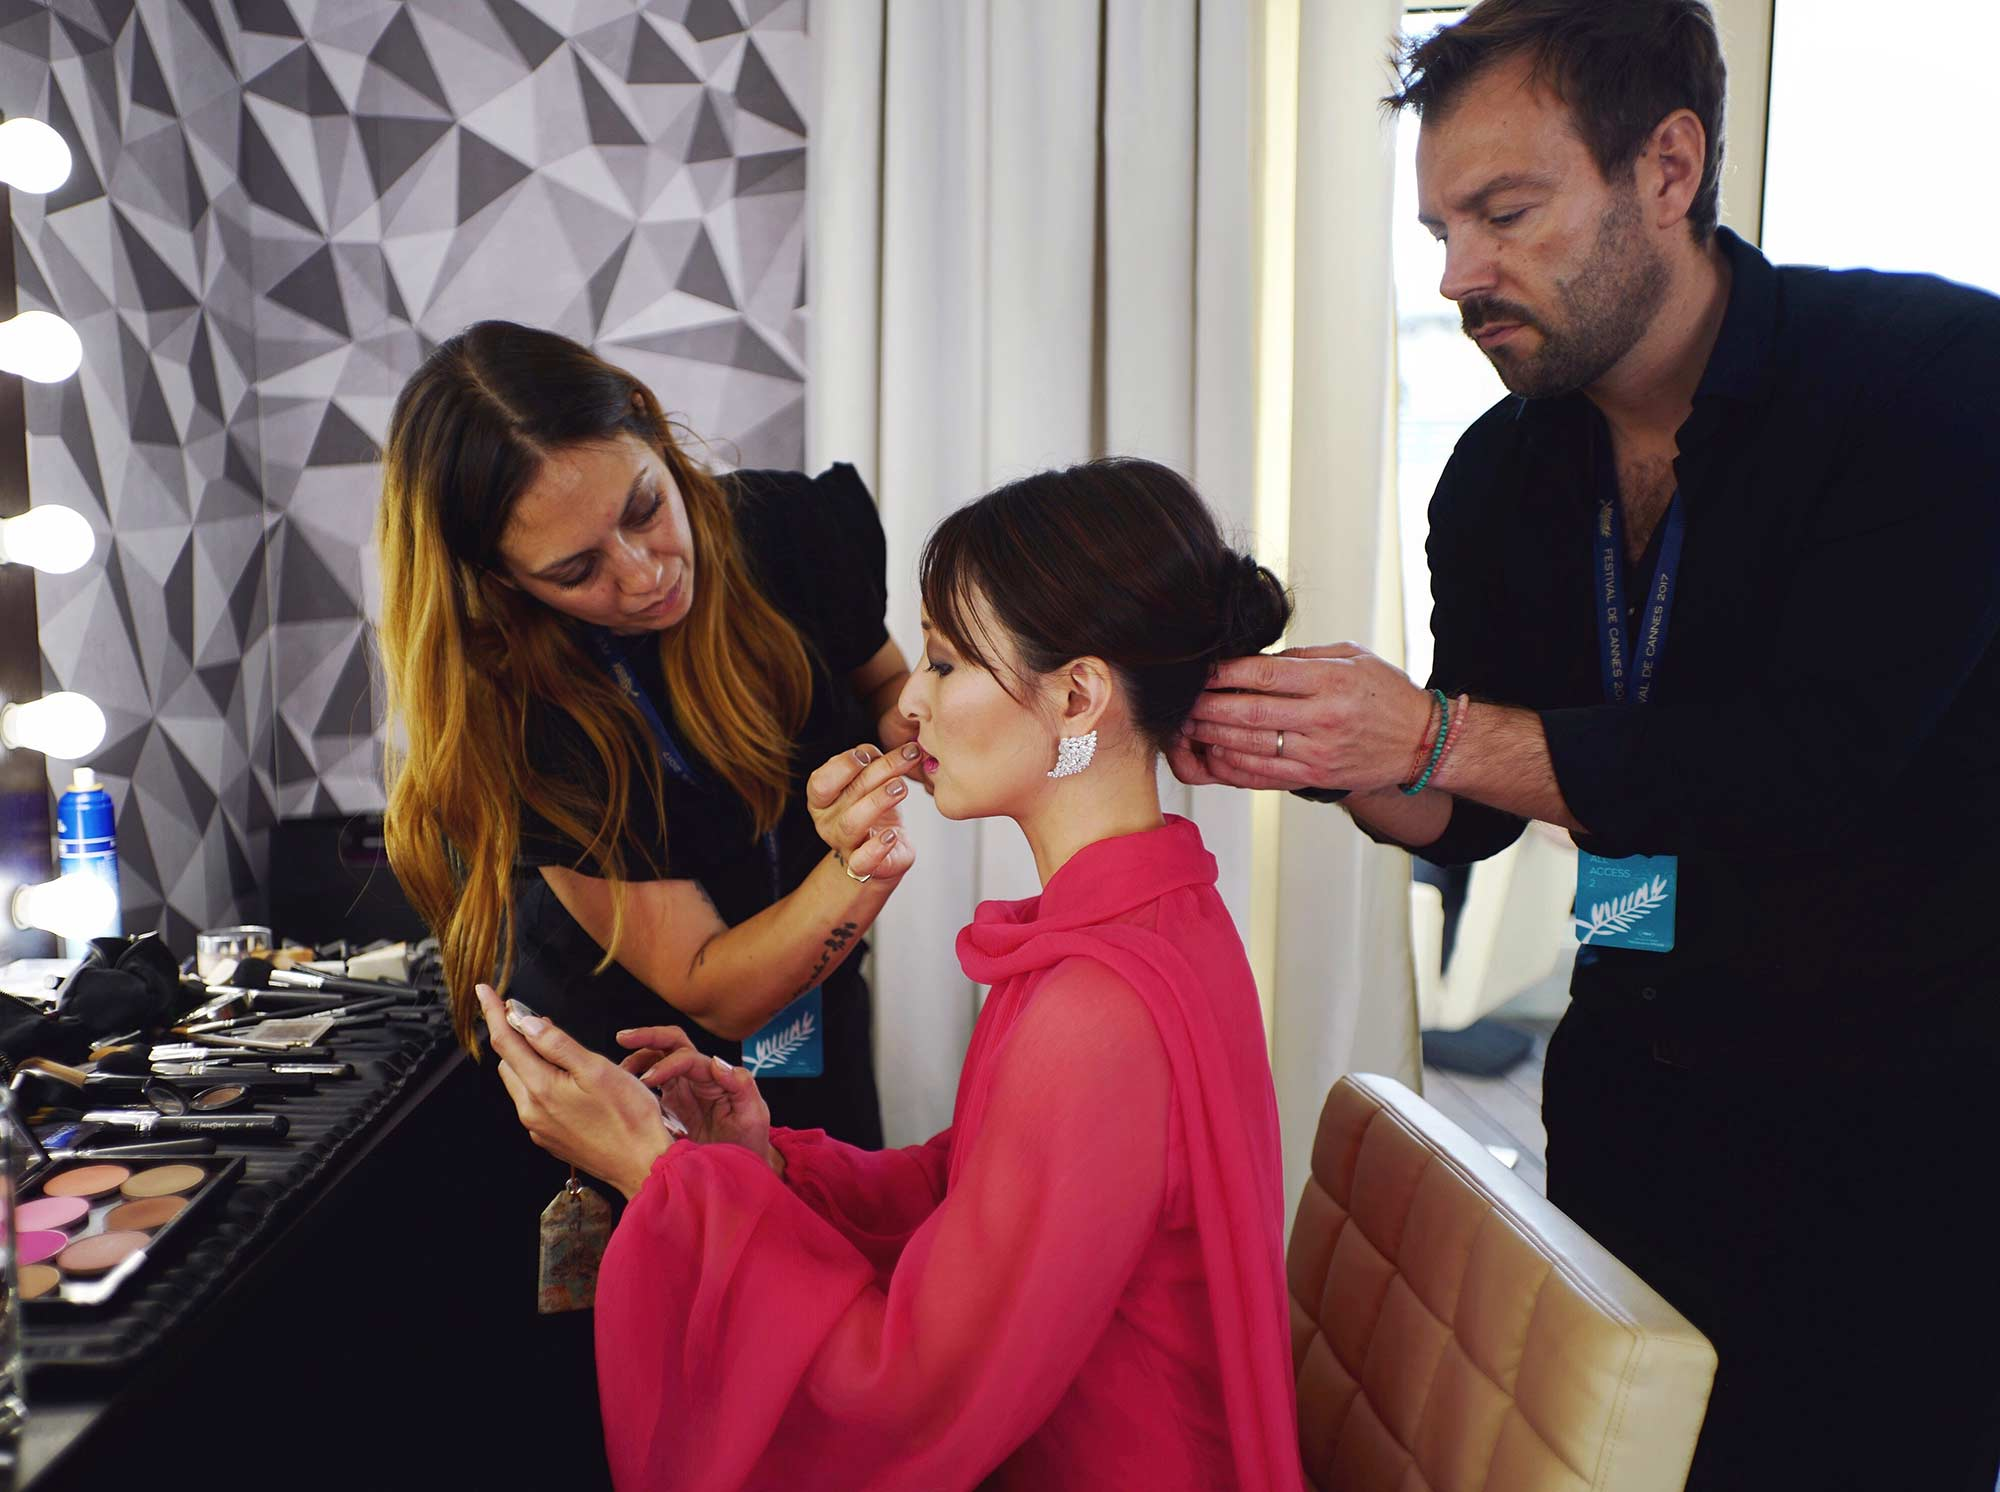 Cannes 2017 - Hair Beppe Rigoni, make up Manuela Di Giammarco